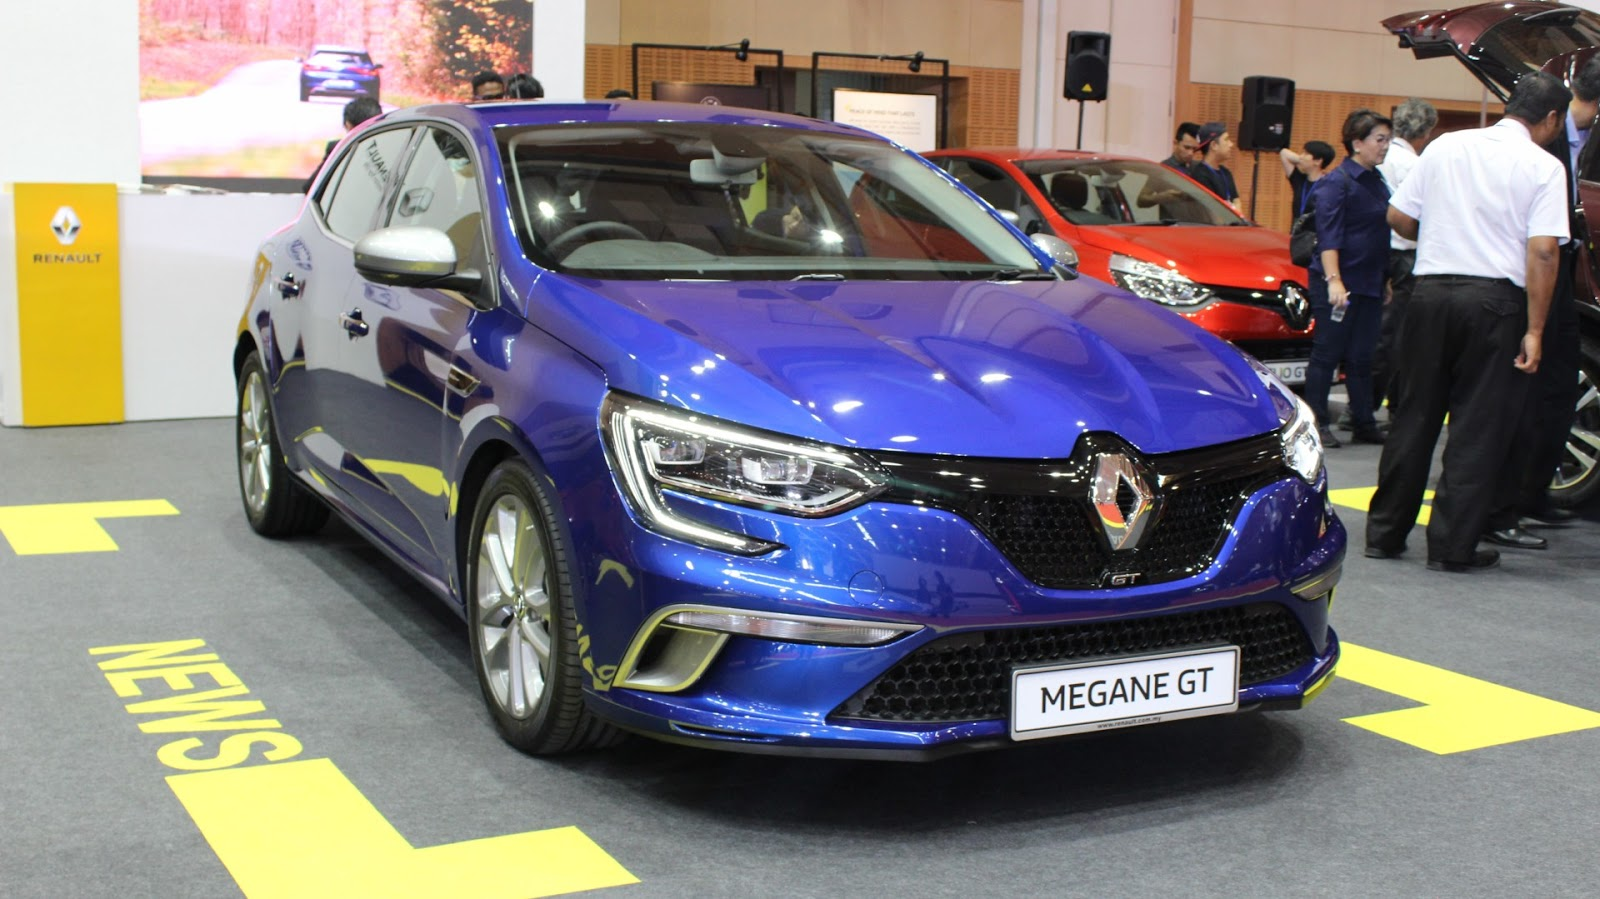 motoring malaysia the new renault megane gt it will be on display at renault 39 s petaling jaya. Black Bedroom Furniture Sets. Home Design Ideas